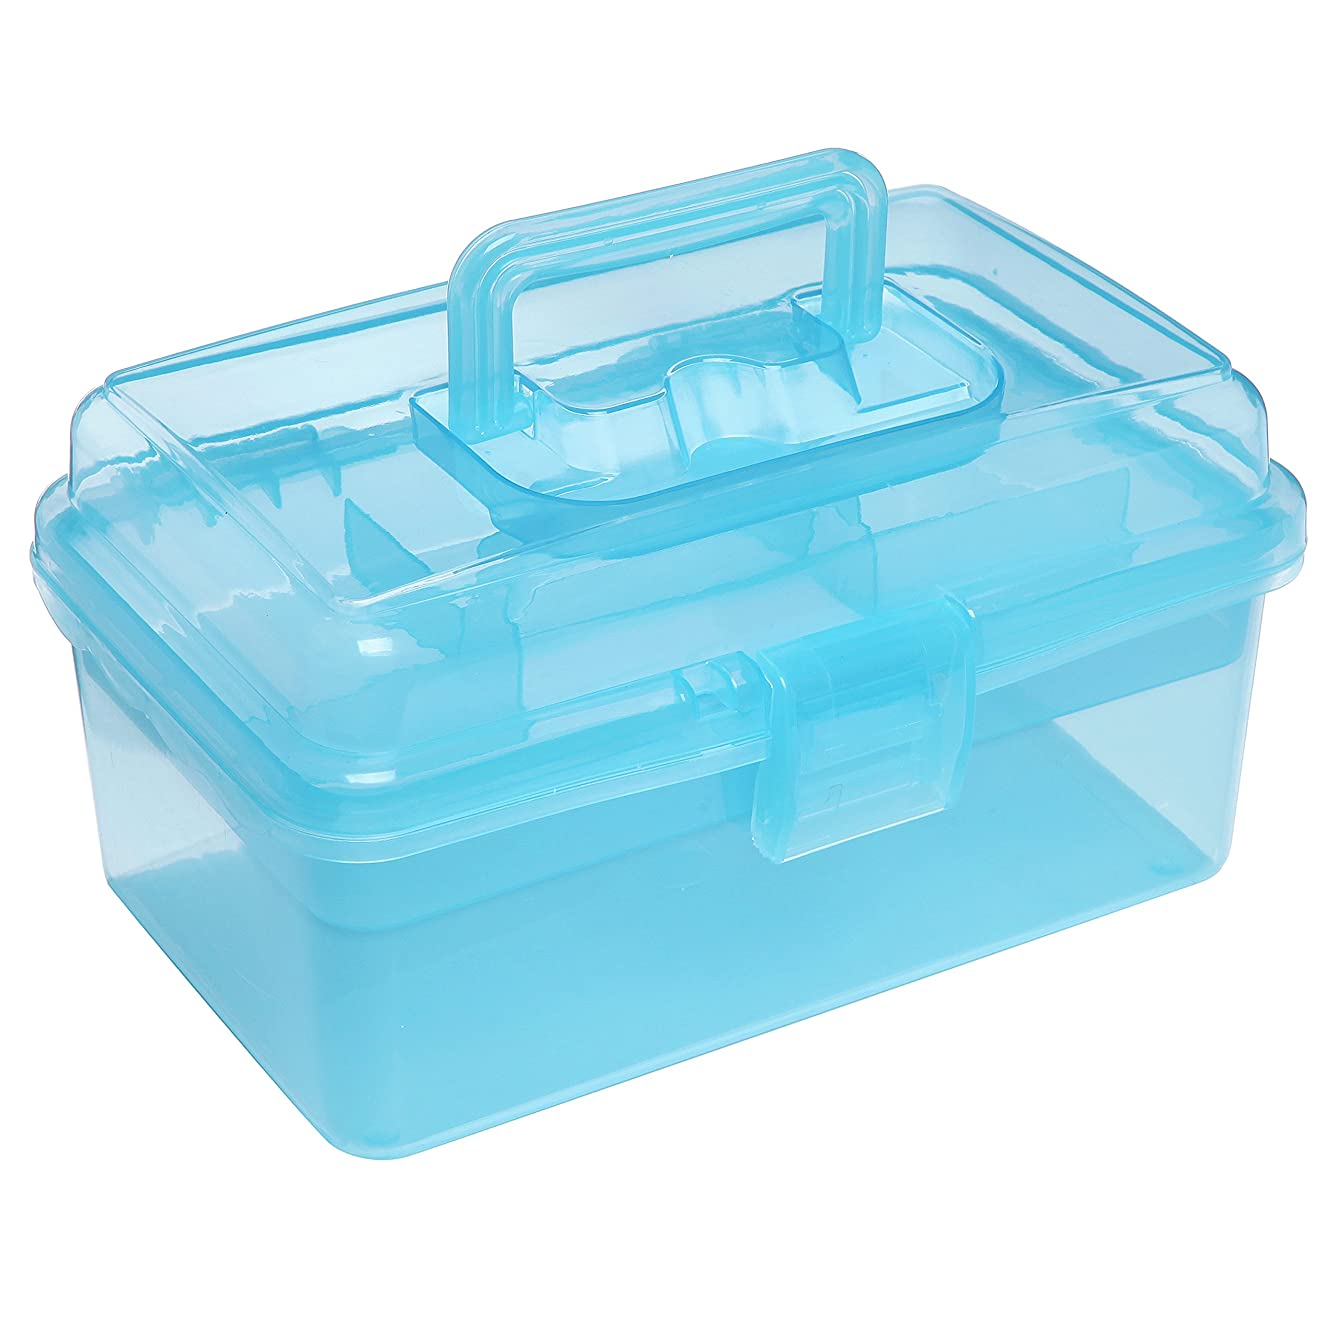 Clear Blue Multipurpose First Aid, Arts & Craft Supply Case/Storage Container Box w/Removable Tray